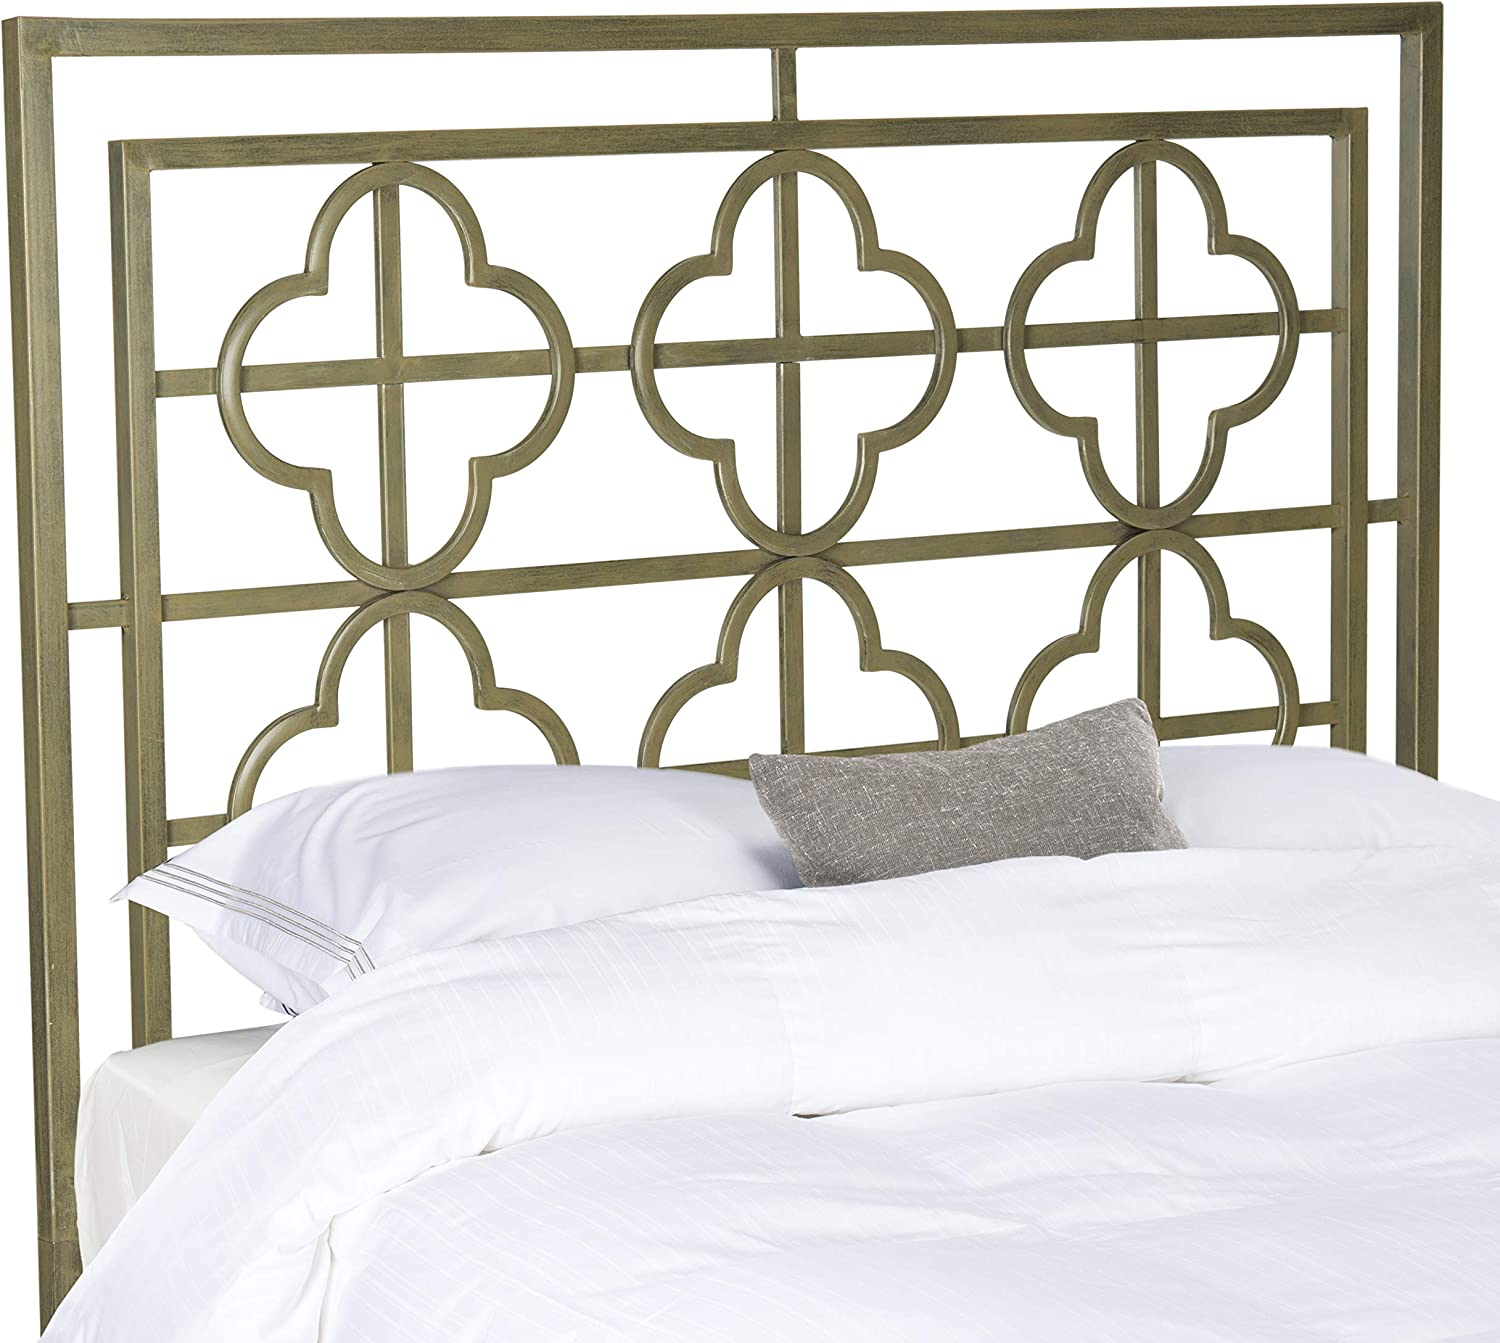 Safavieh Home Collection Popular product supreme Lucina Headboard French Silver Full